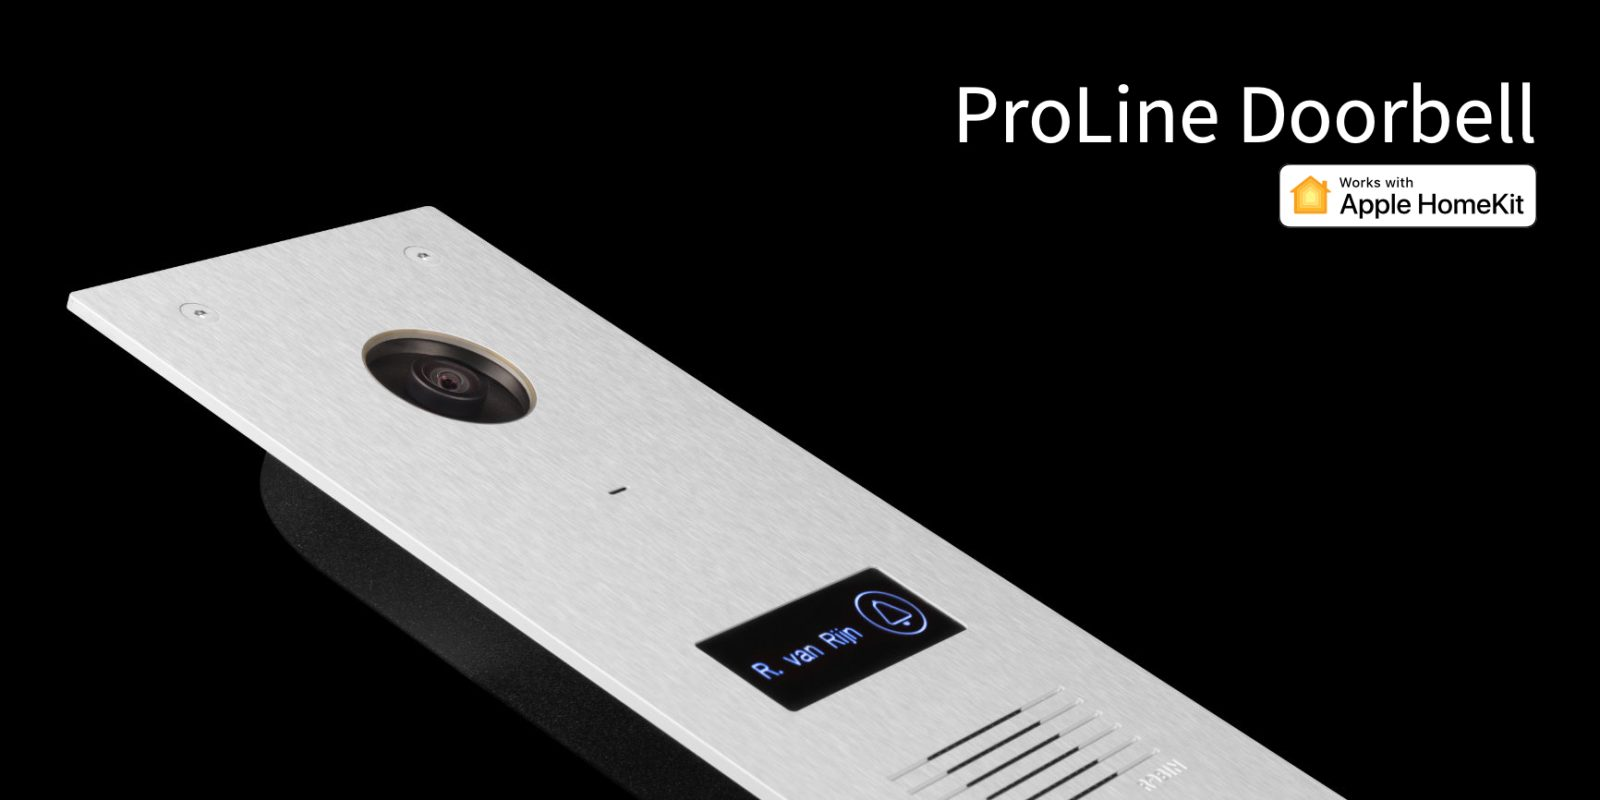 ProLine HomeKit doorbell announces plans to support new iOS 13 iCloud video recording